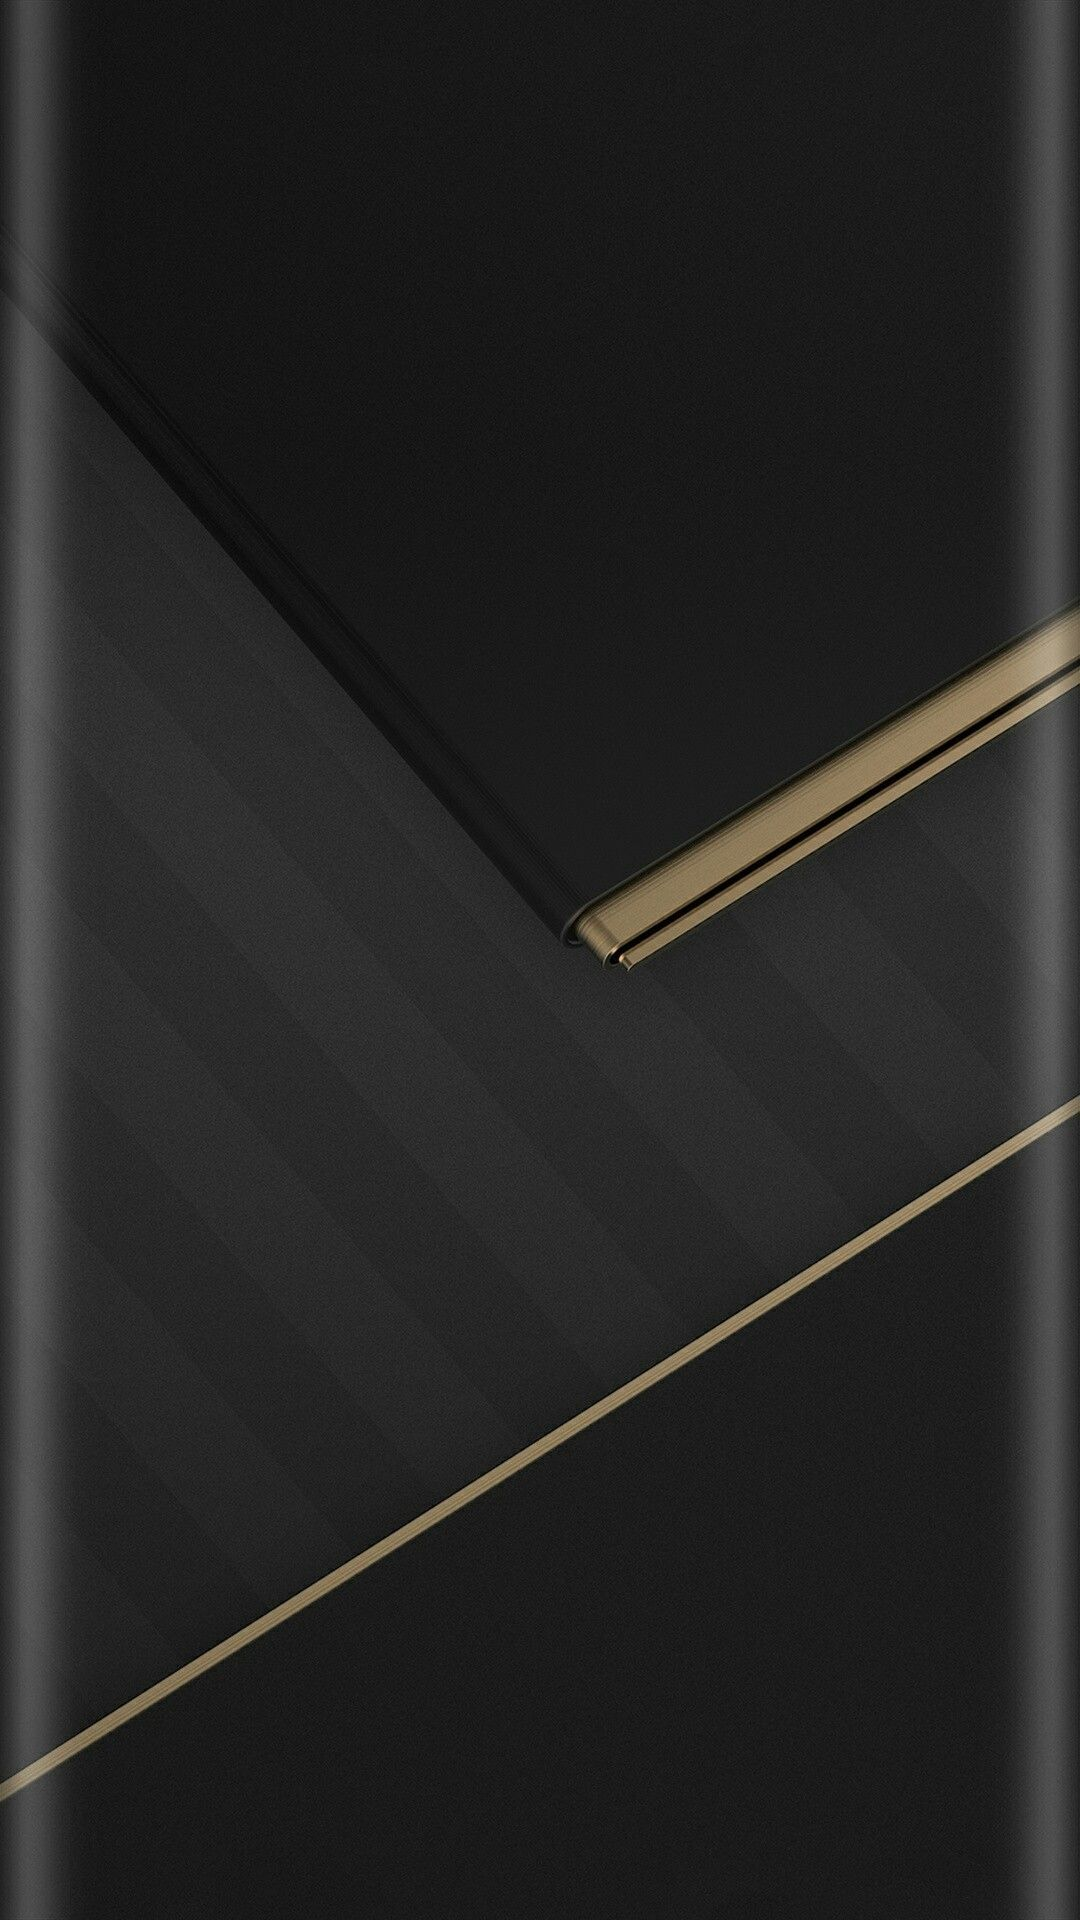 Black White And Gold Iphone Background On High Quality Wallpaper On Firefoxwallpapers Com Black White Royal Wallpaper Gold Royal Wallpaper Android Wallpaper